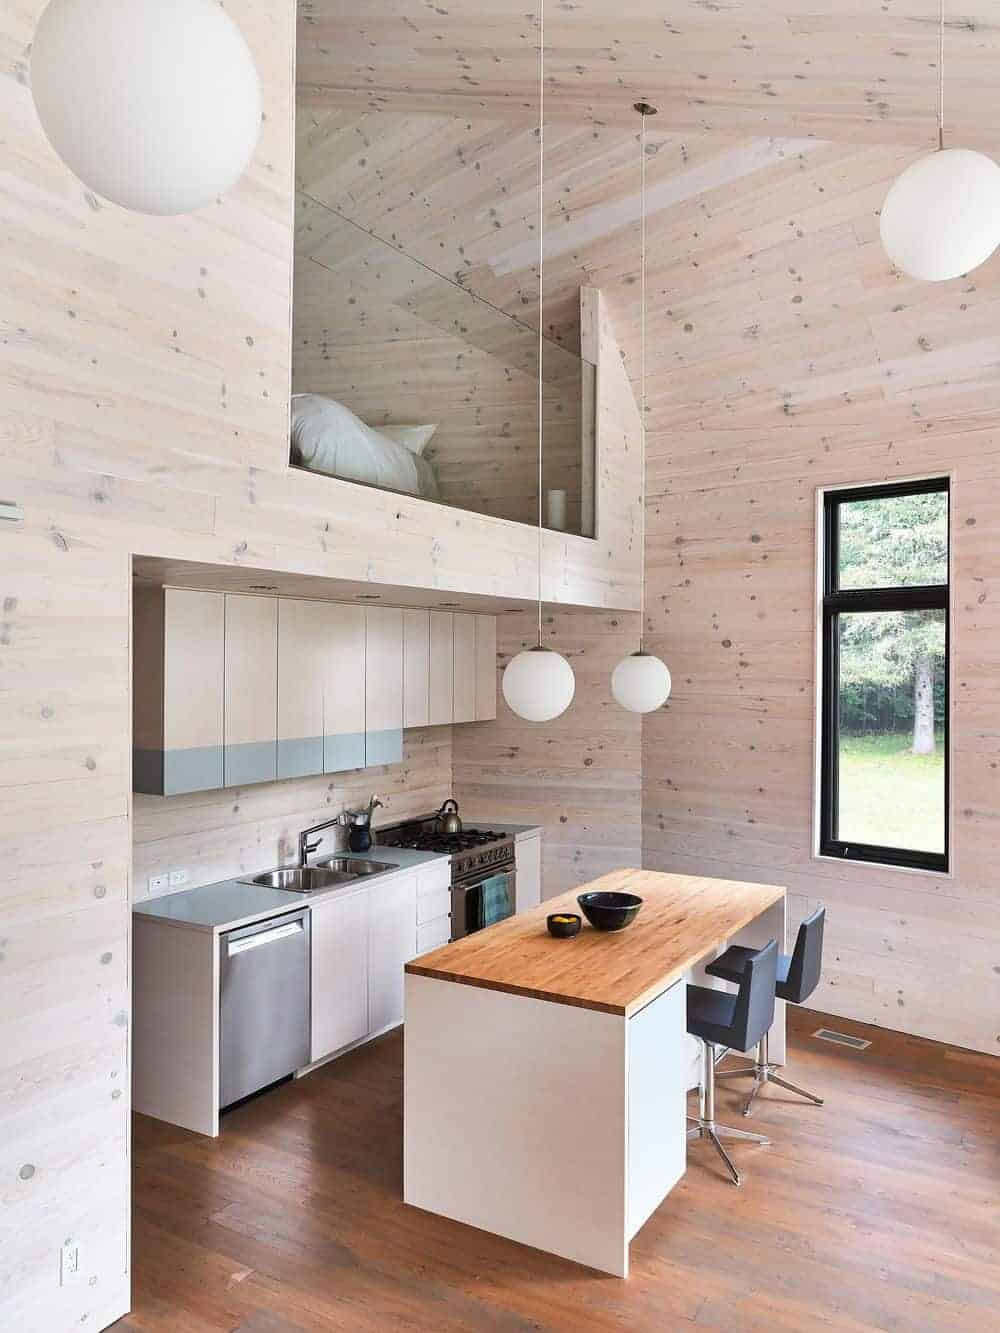 A breakfast island with black leather stools faces the light wood cabinets in this small kitchen with a glazed window and high wood plank ceiling mounted with globe pendant lights.